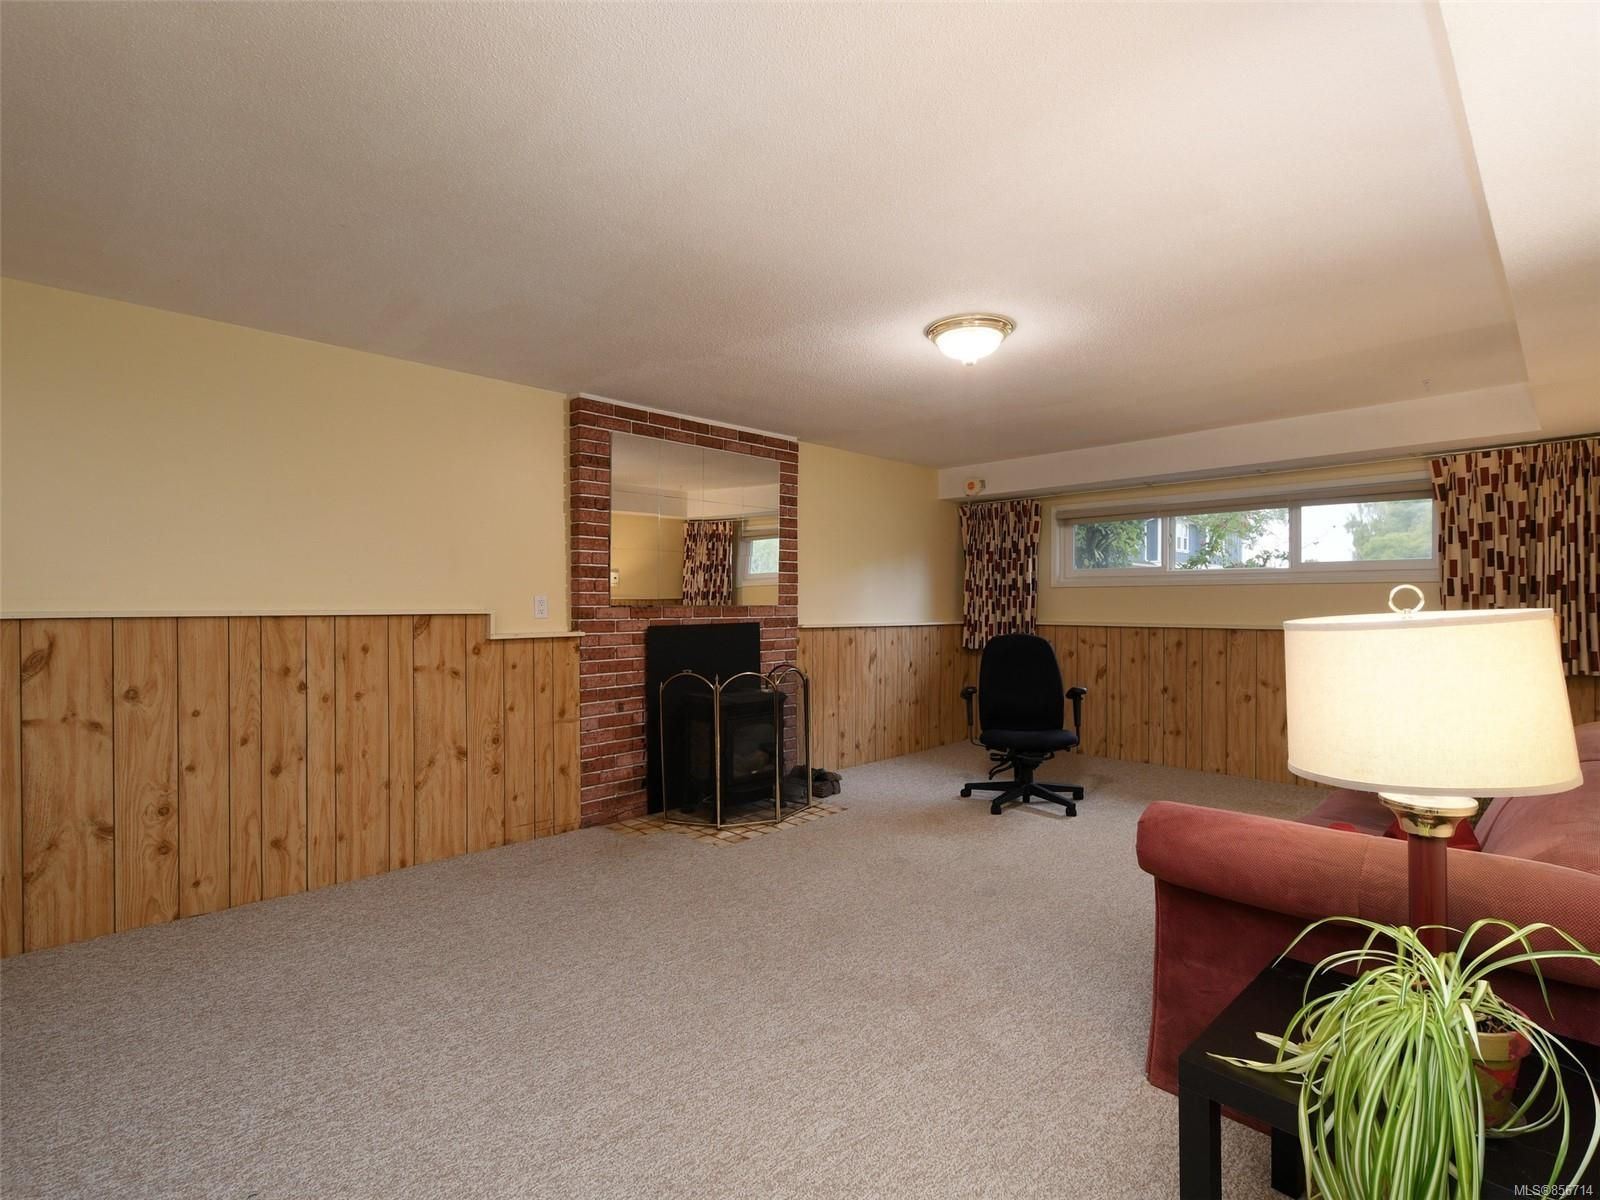 Photo 14: Photos: 3909 Ansell Rd in : SE Mt Tolmie House for sale (Saanich East)  : MLS®# 856714